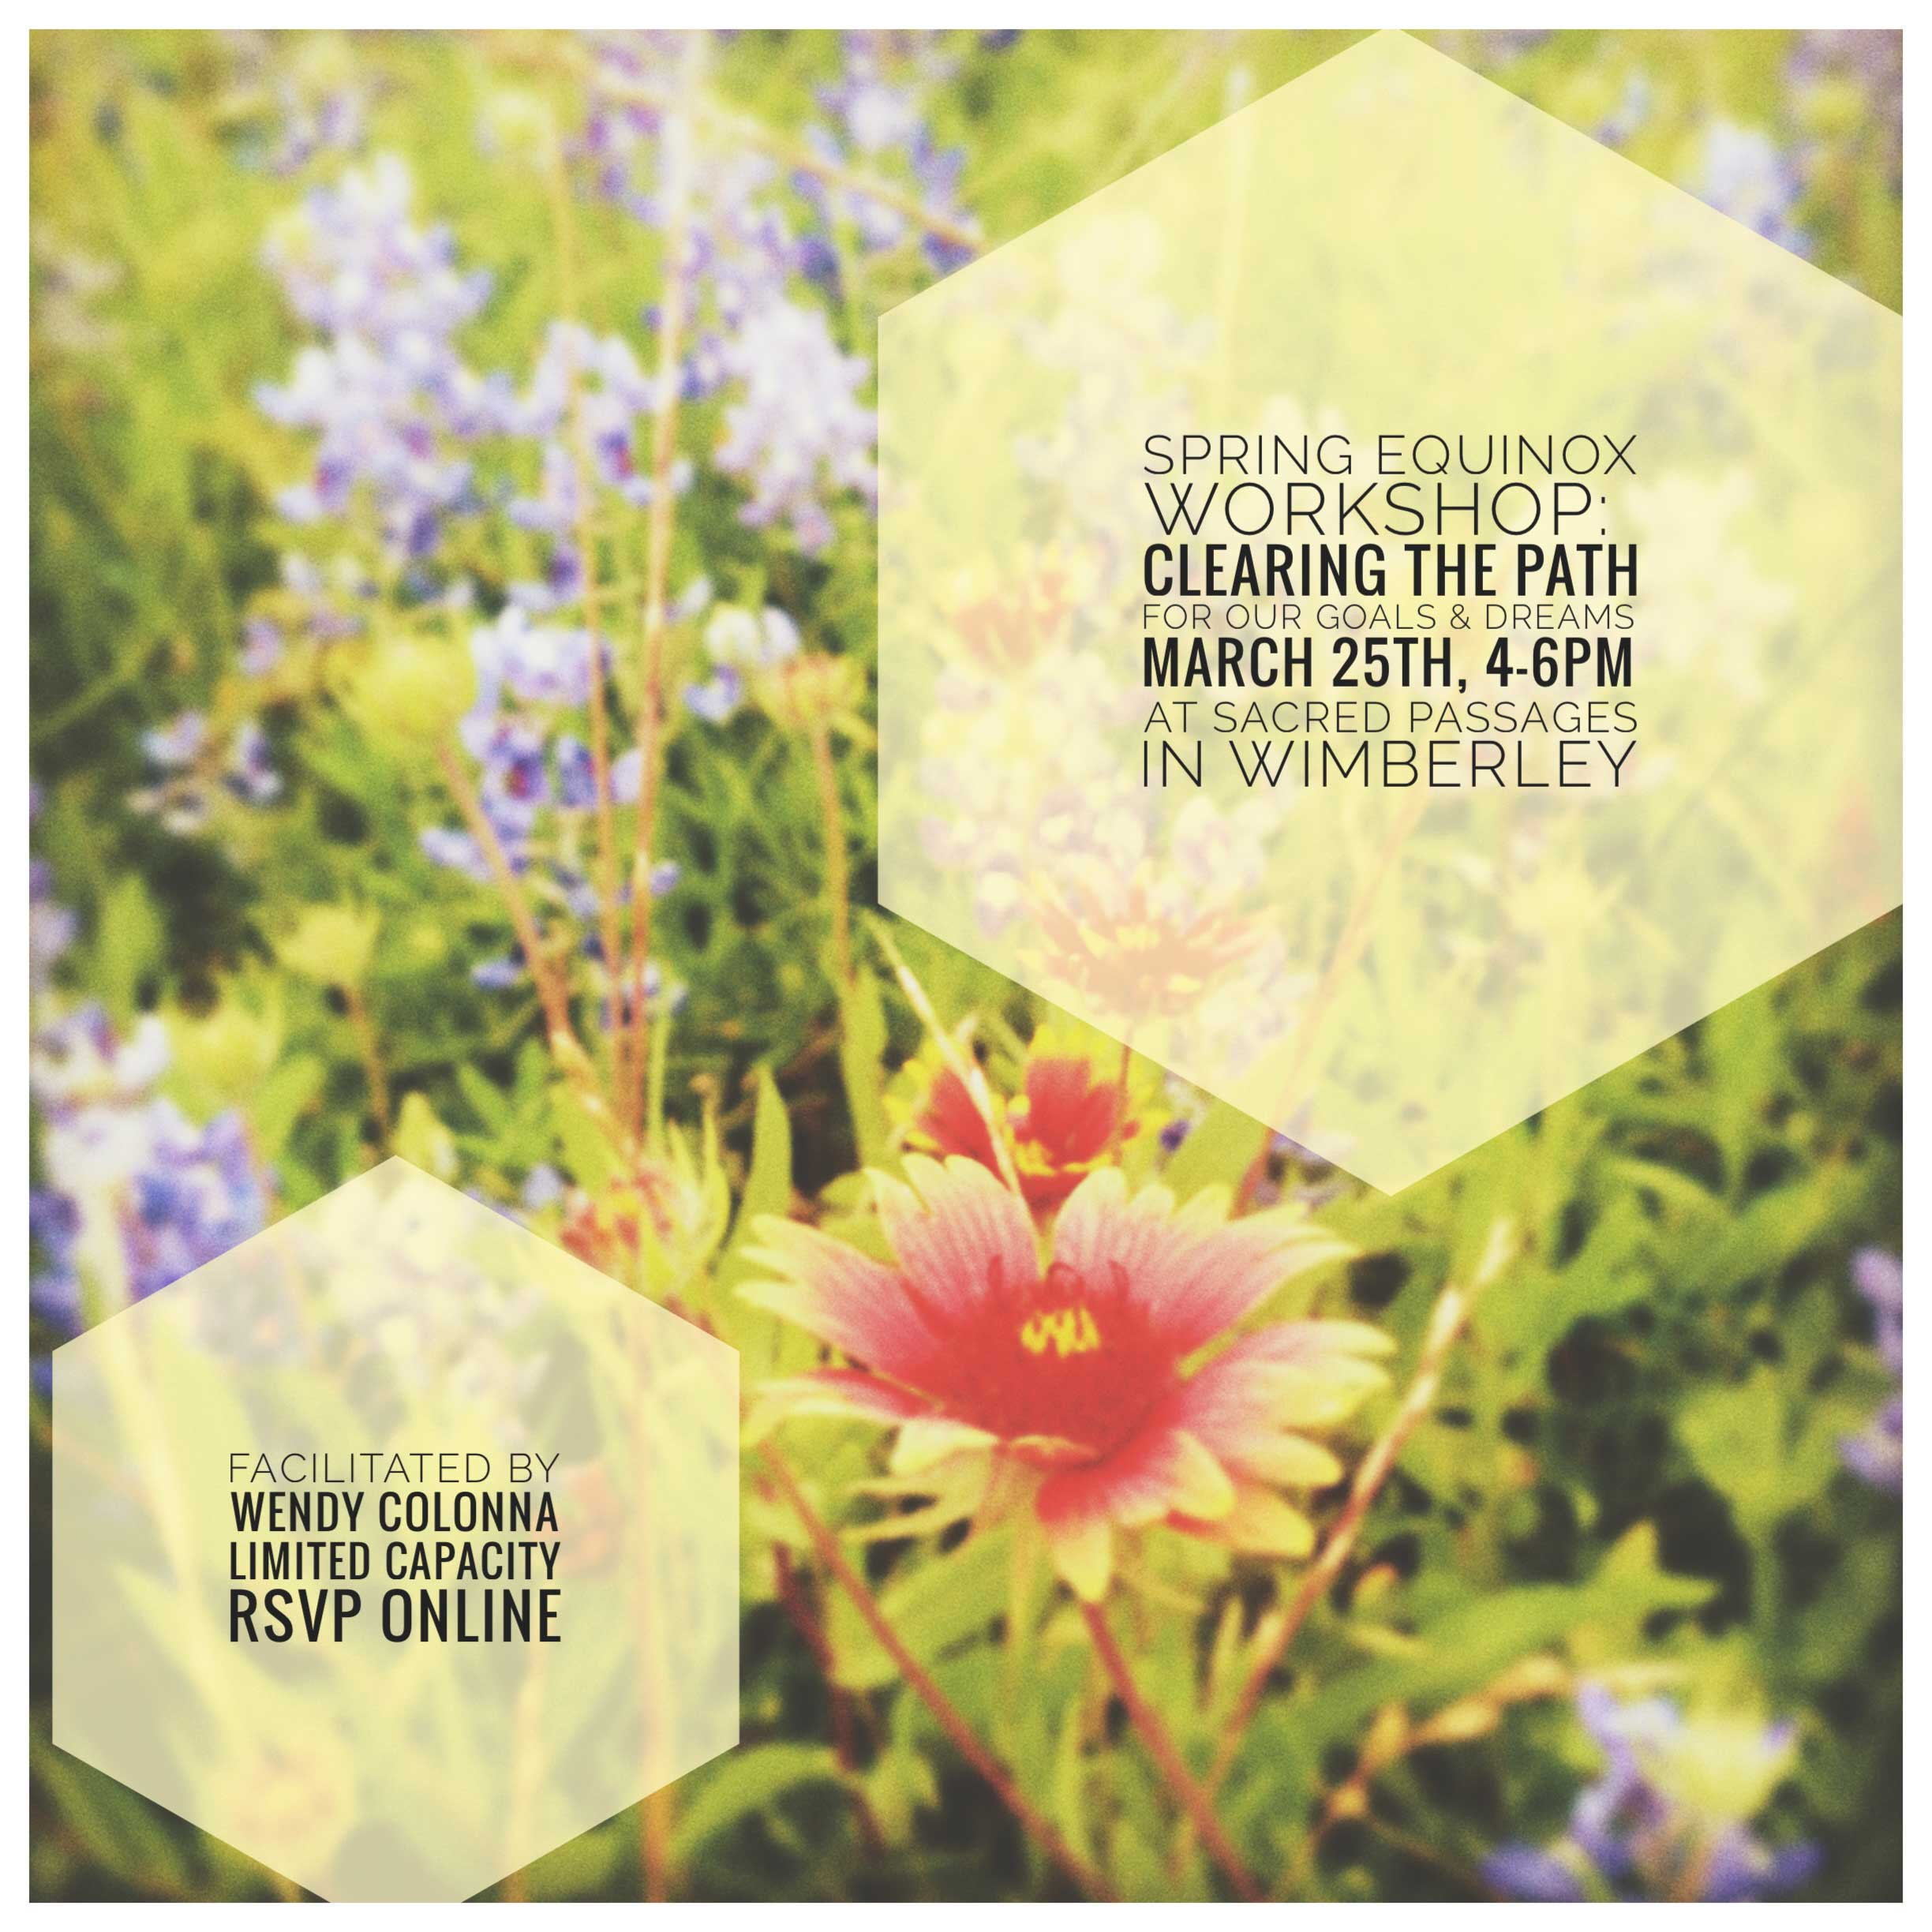 2018 Spring Equinox Workshop